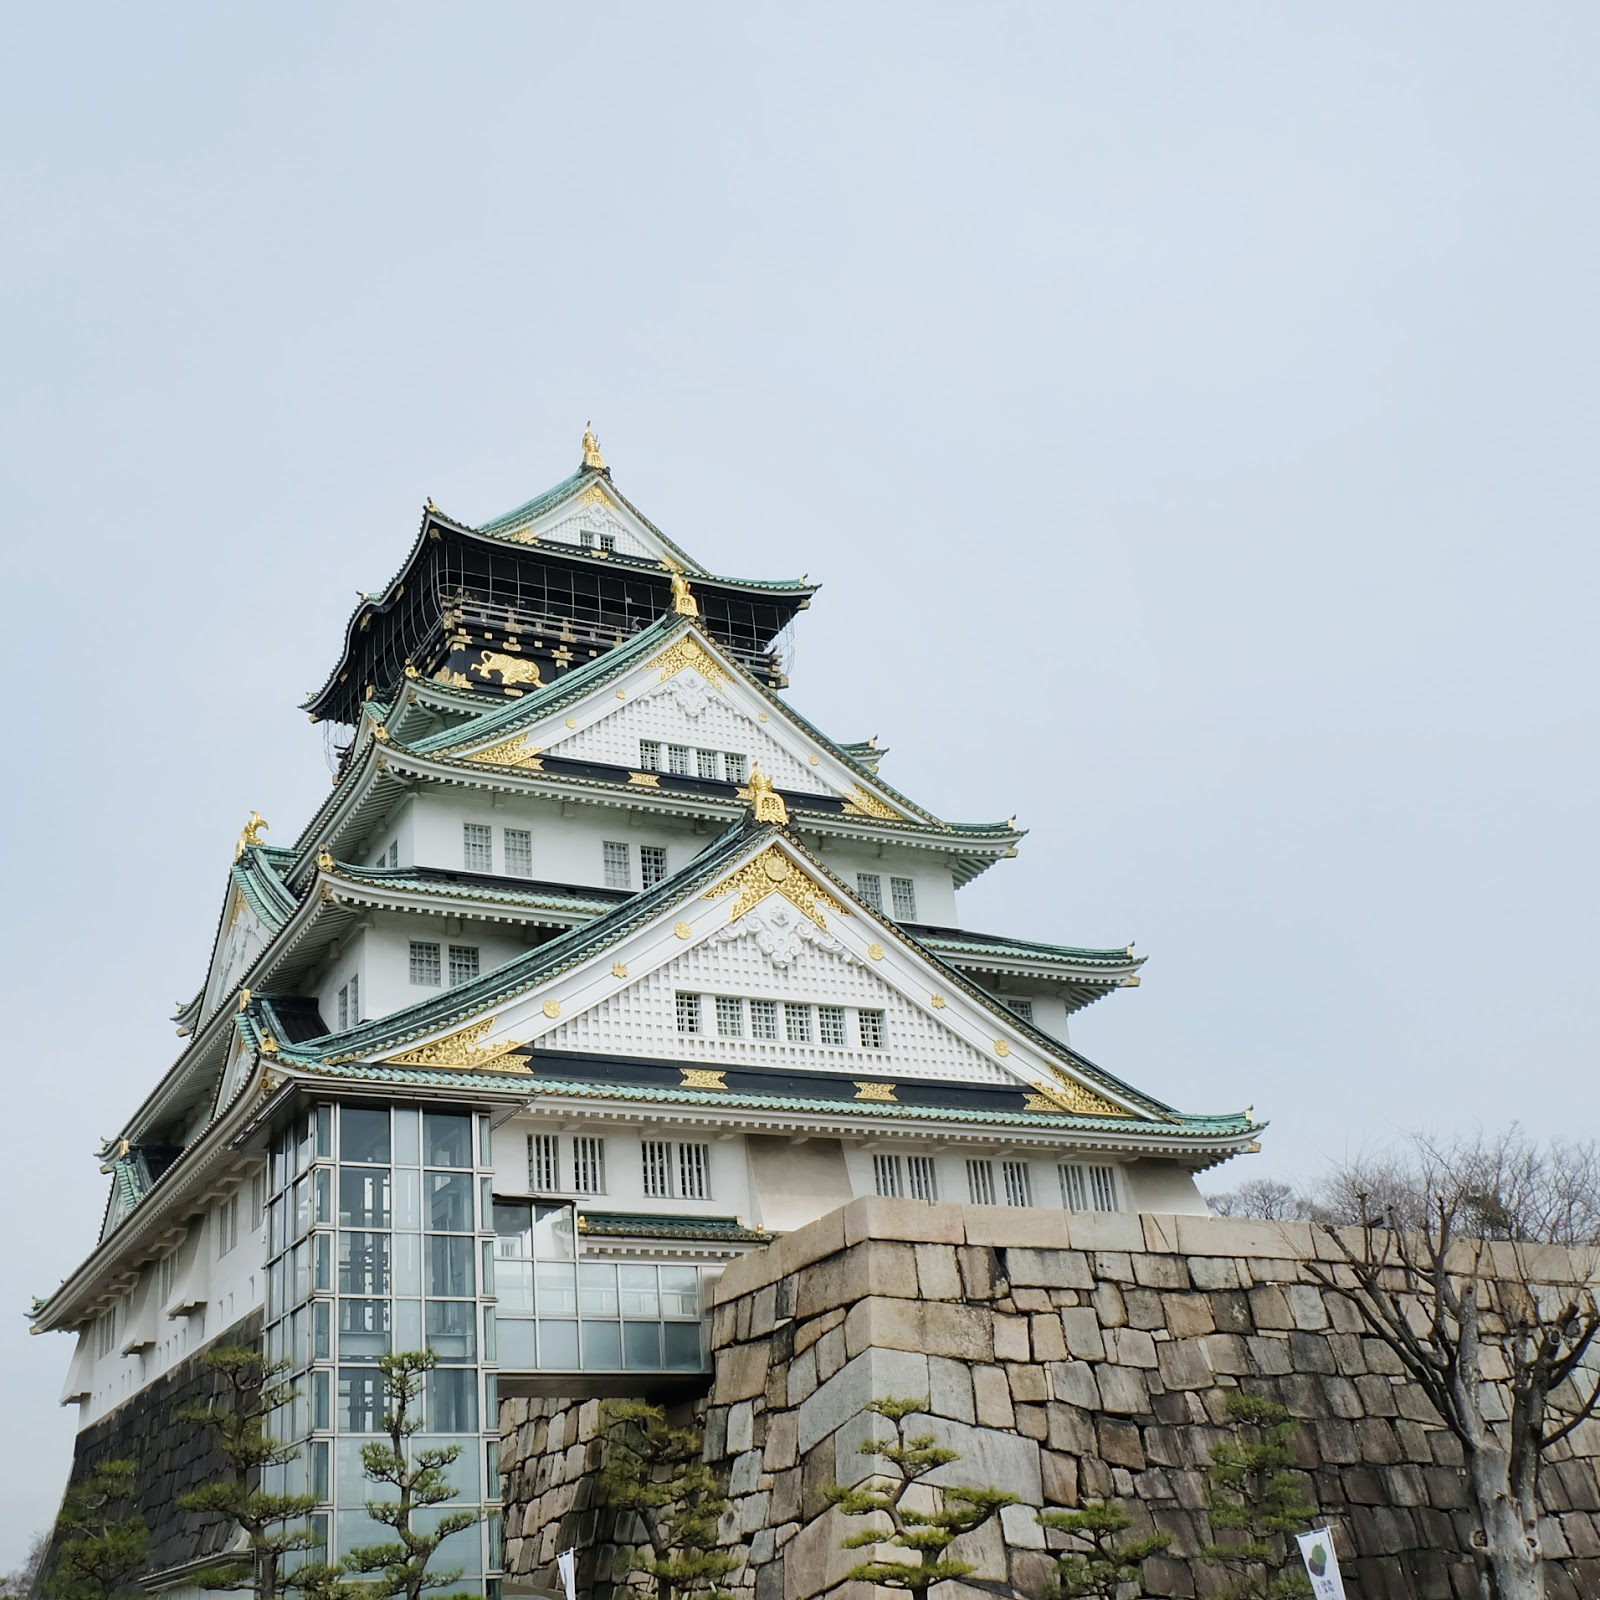 Japan 14 days itinerary osaka castle | www.bigdreamerblog.com